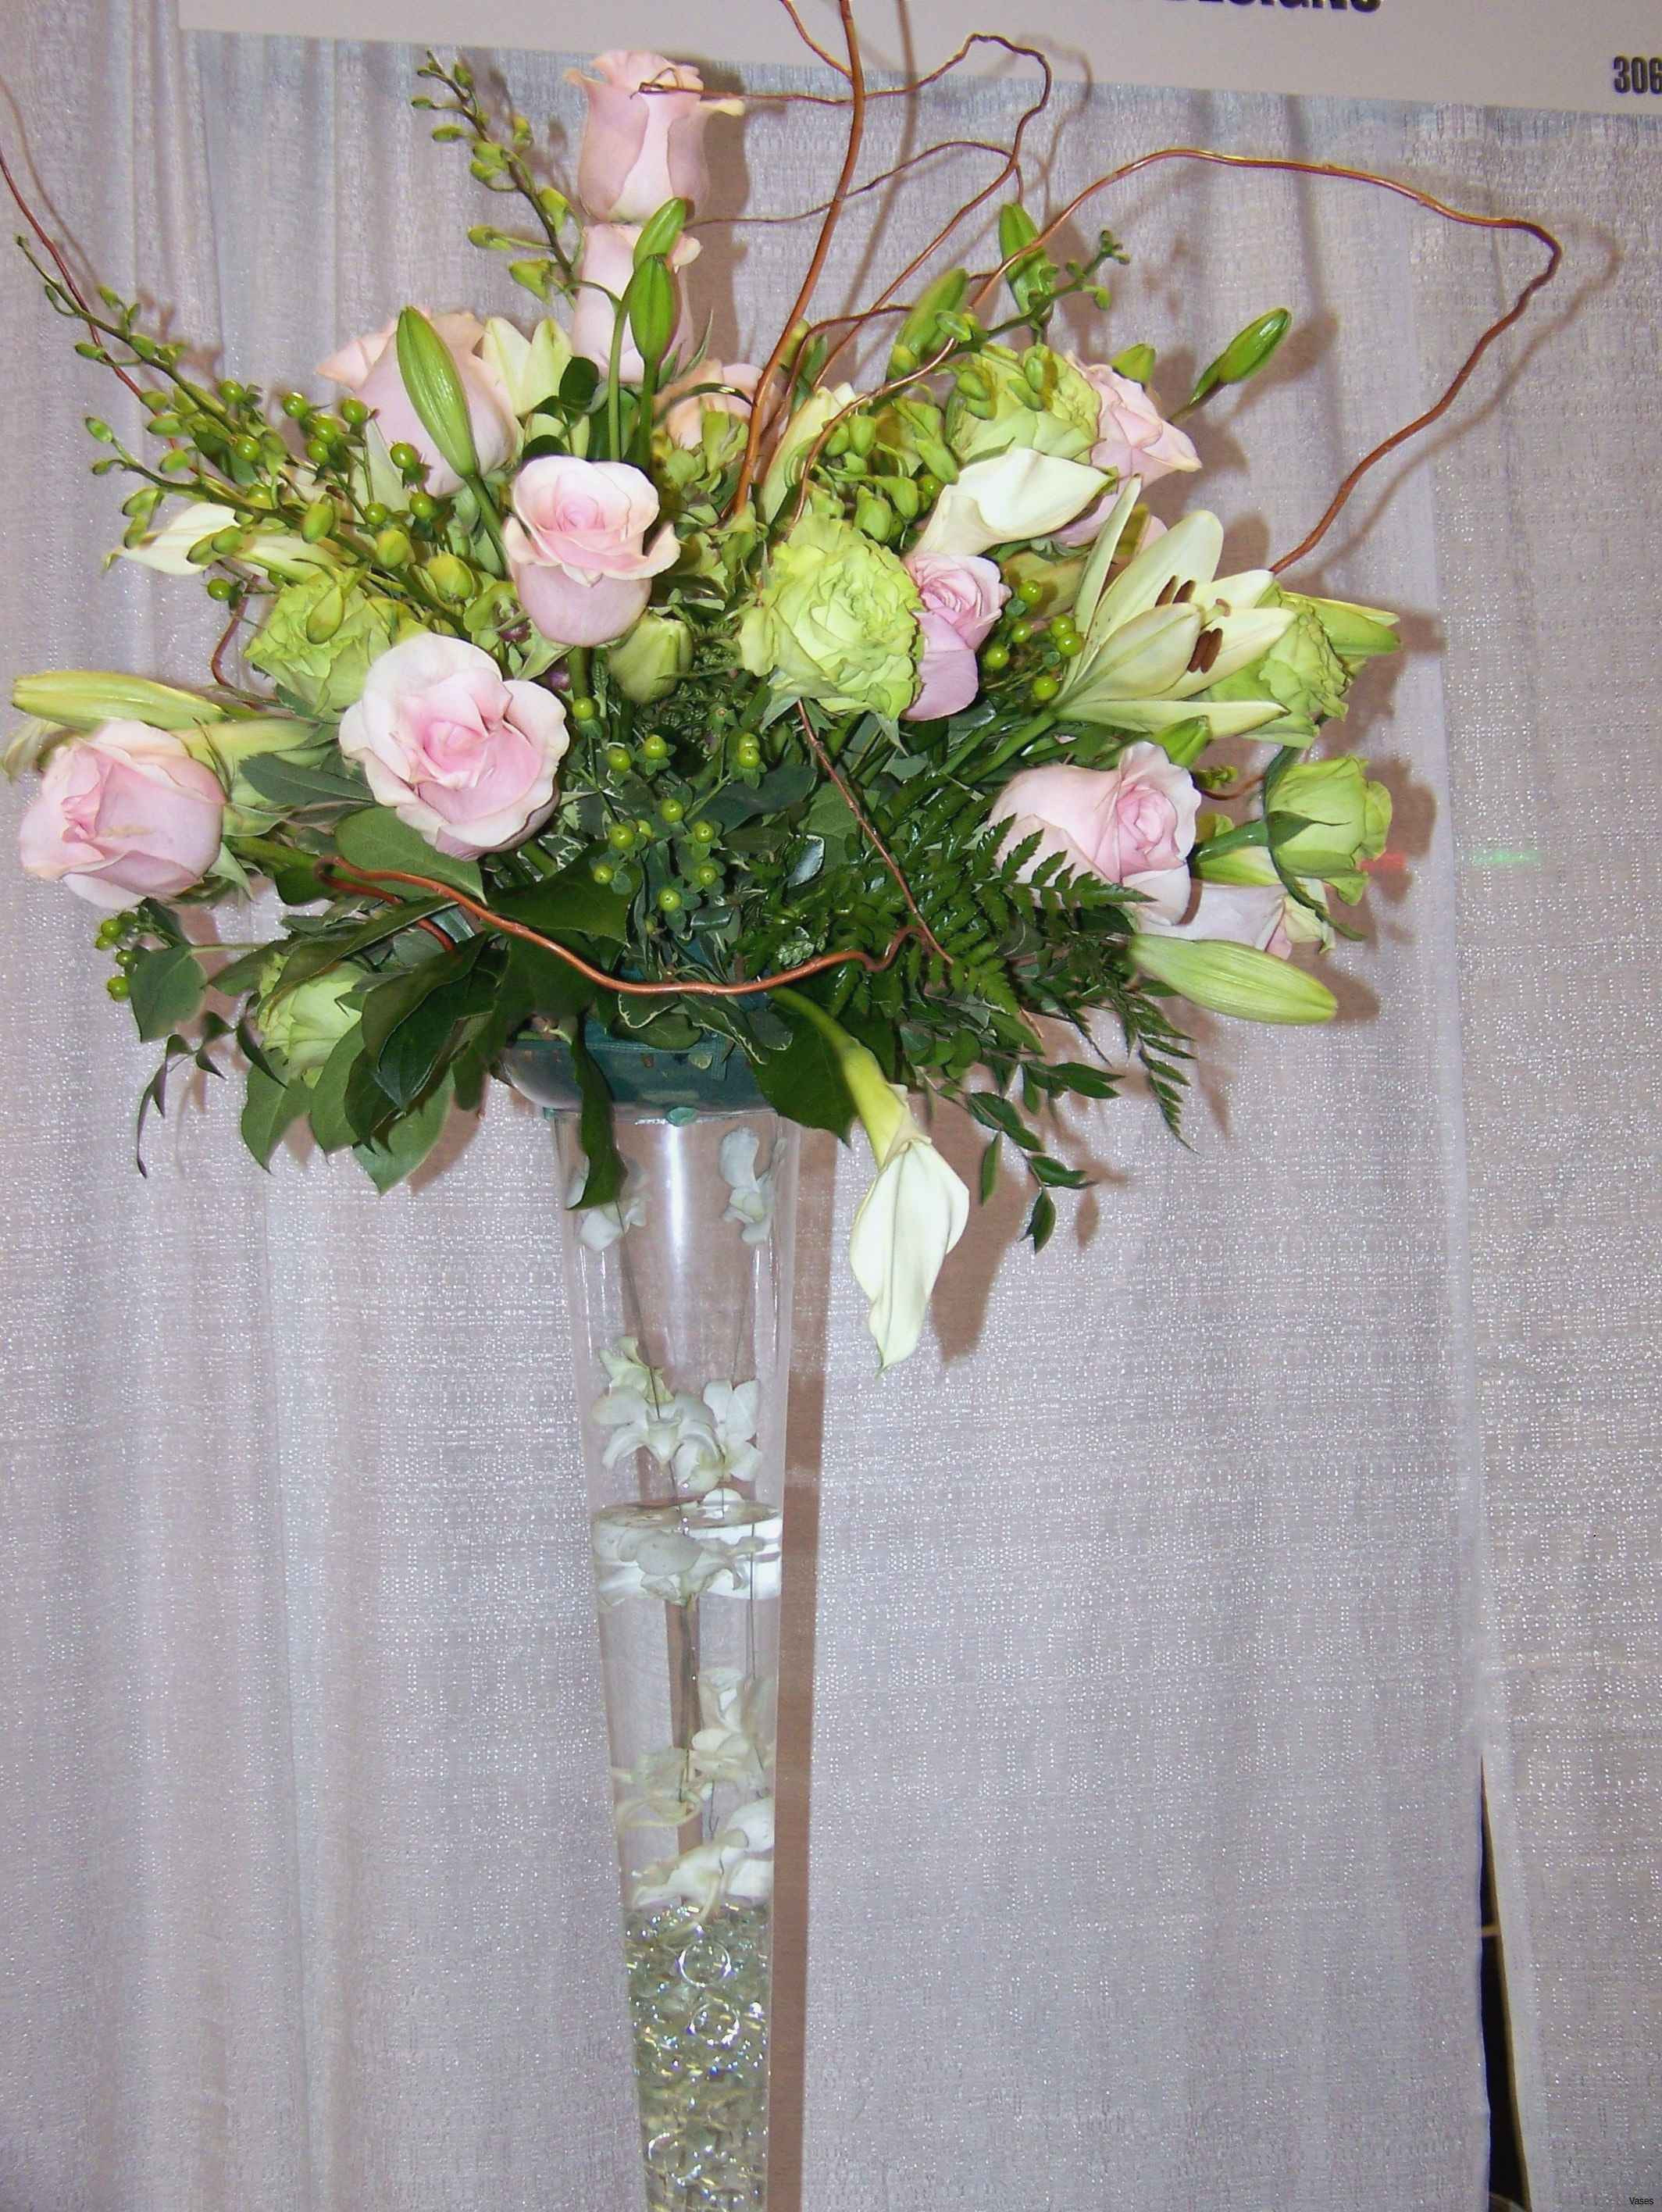 vases for sale of elegant fall wedding bouquet wedding theme with regard to h vases ideas for floral arrangements in i 0d design ideas design inspiration rustic fall